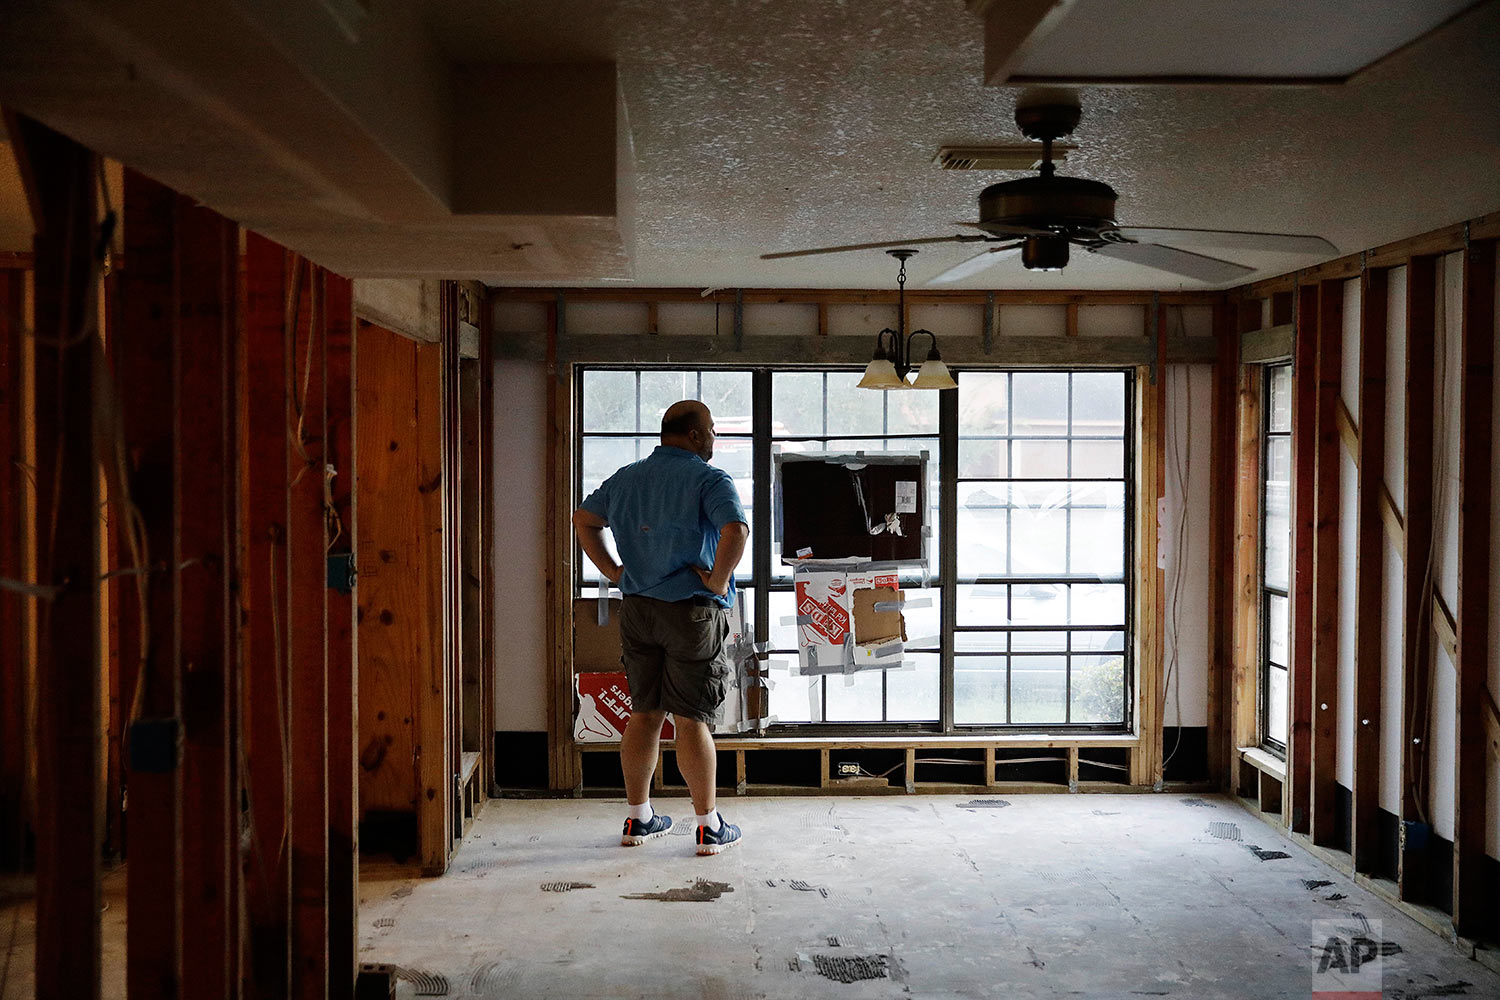 """Wilton Johnson stands in the gutted home in Beaumont, Texas, Monday, Sept. 25, 2017, that he shares with his parents. It was damaged by Hurricane Harvey. """"We need to be responsible human beings to the earth. But at the same time we shouldn't sacrifice the financial freedoms, the free market and free enterprise in a capitalistic society,"""" said Johnson, who supports Trump's environmental agenda. (AP Photo/David Goldman)"""